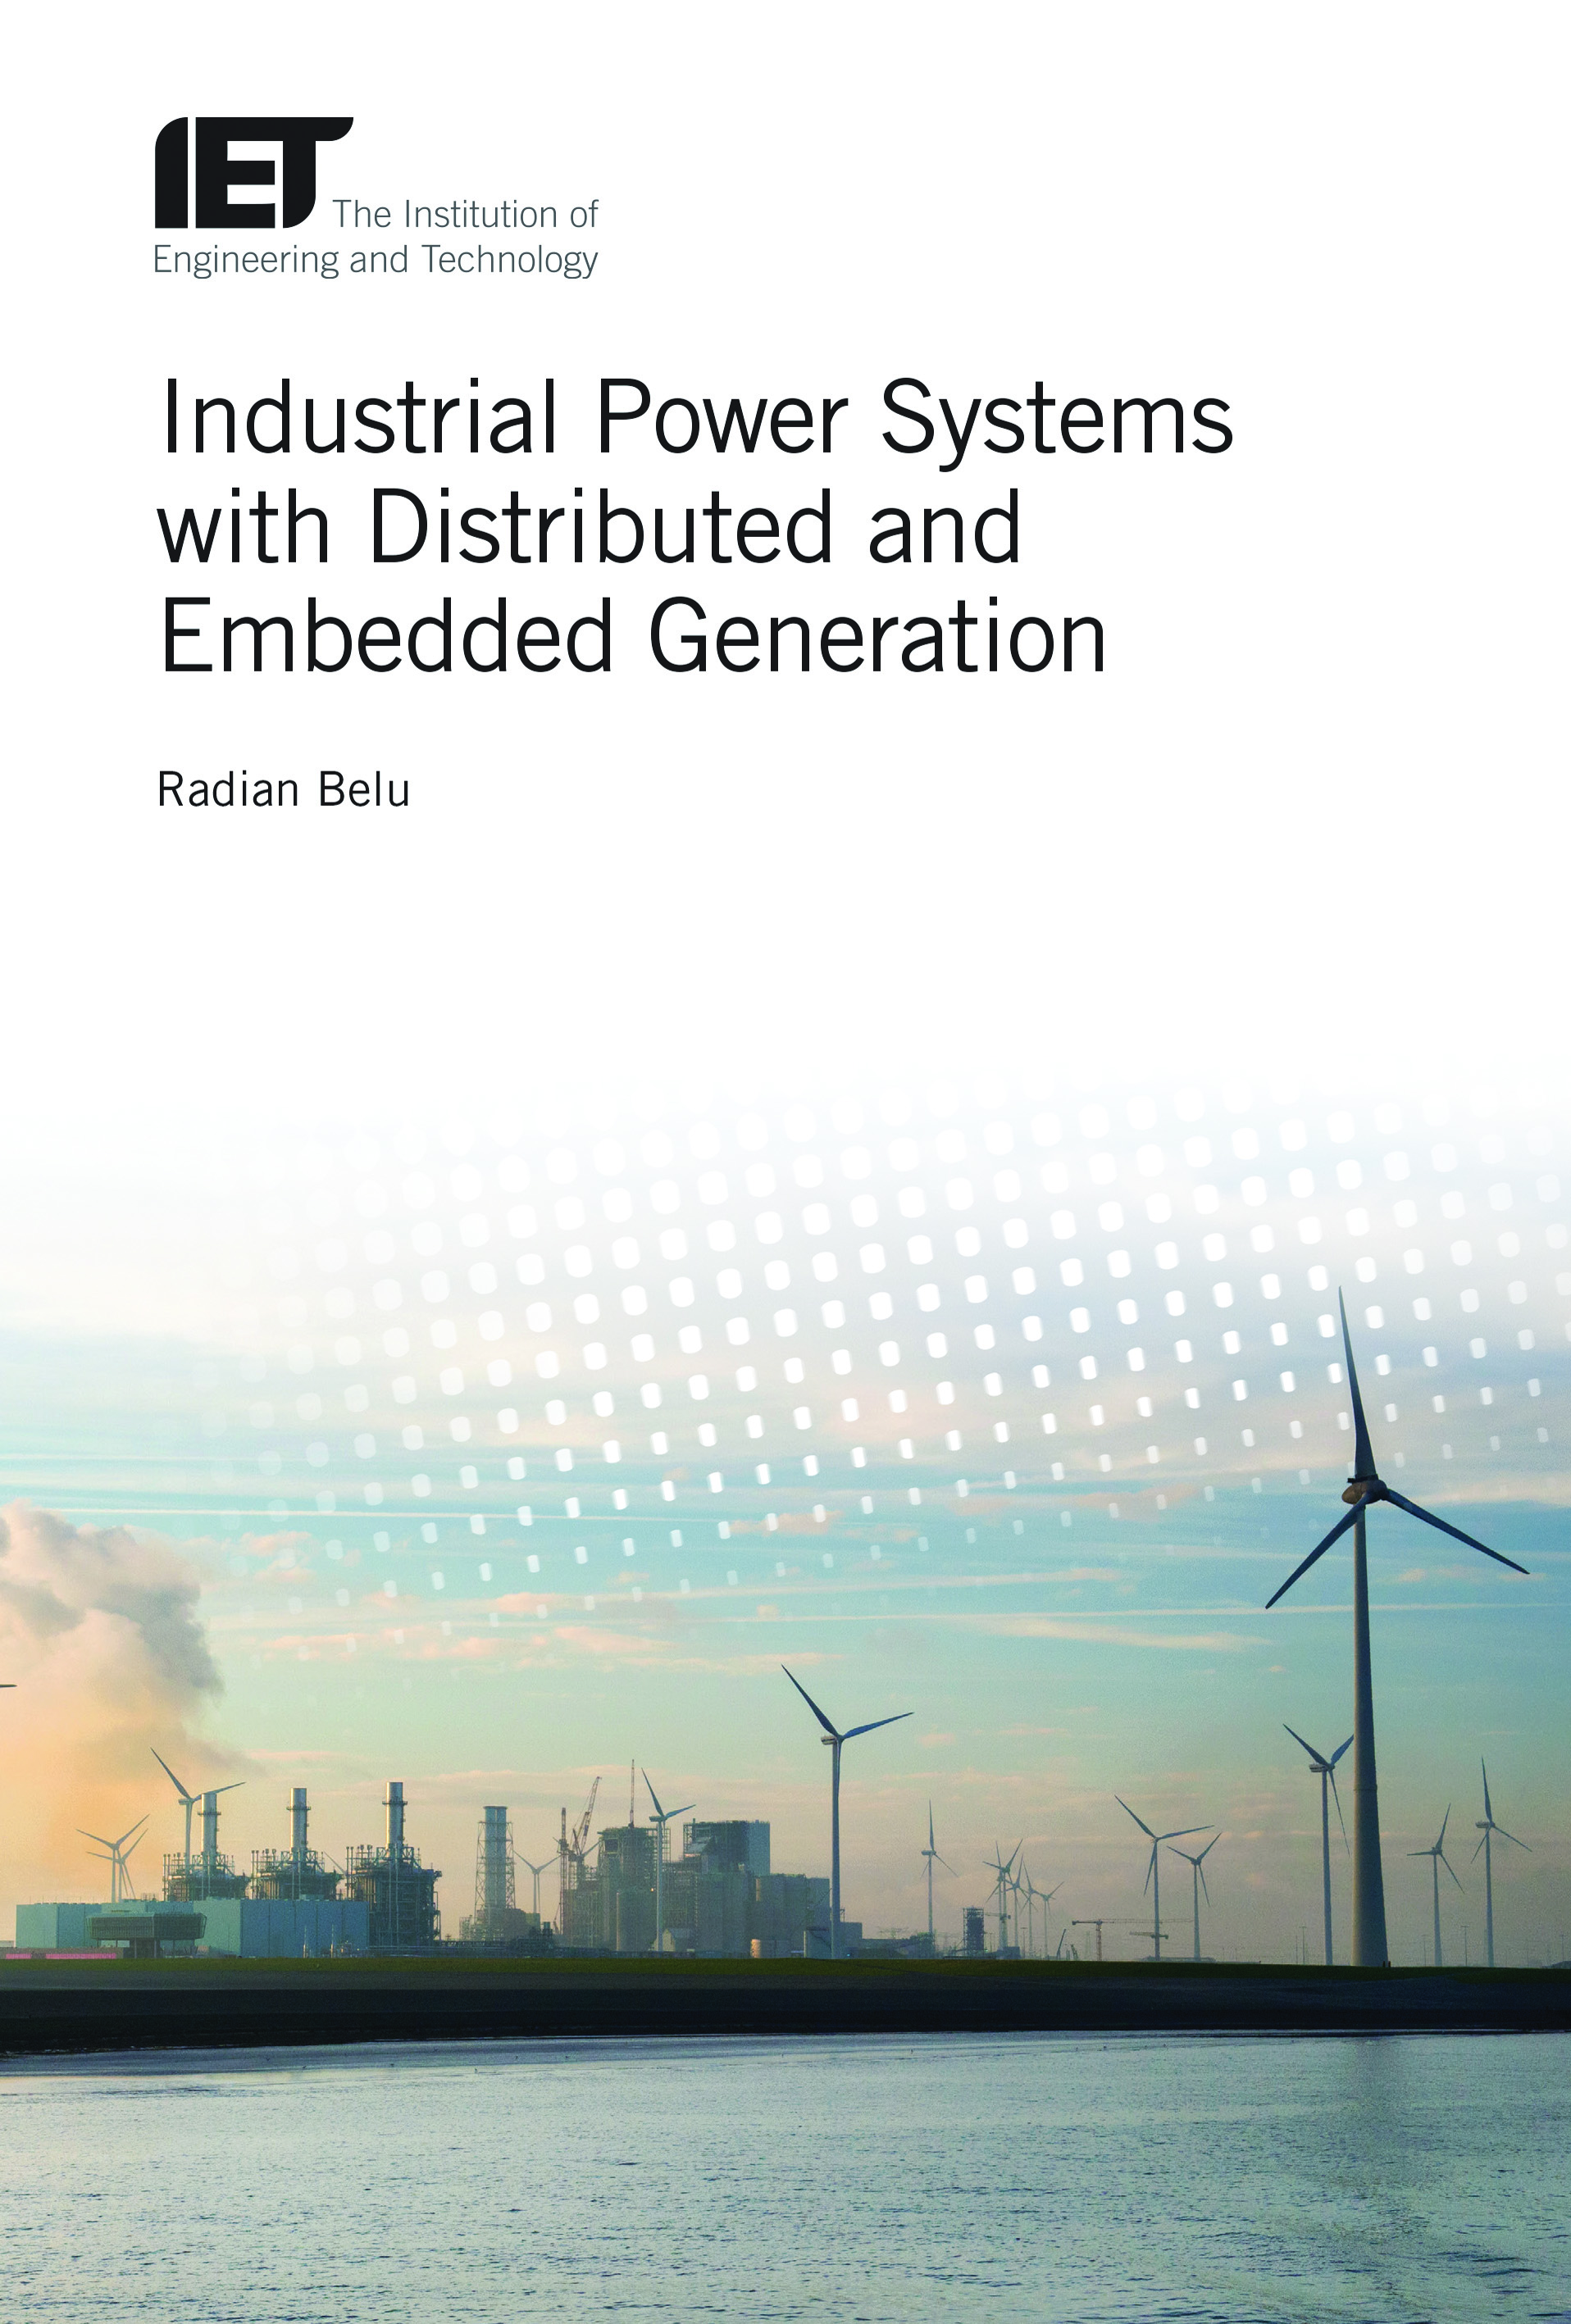 Industrial Power Systems with Distributed and Embedded Generation